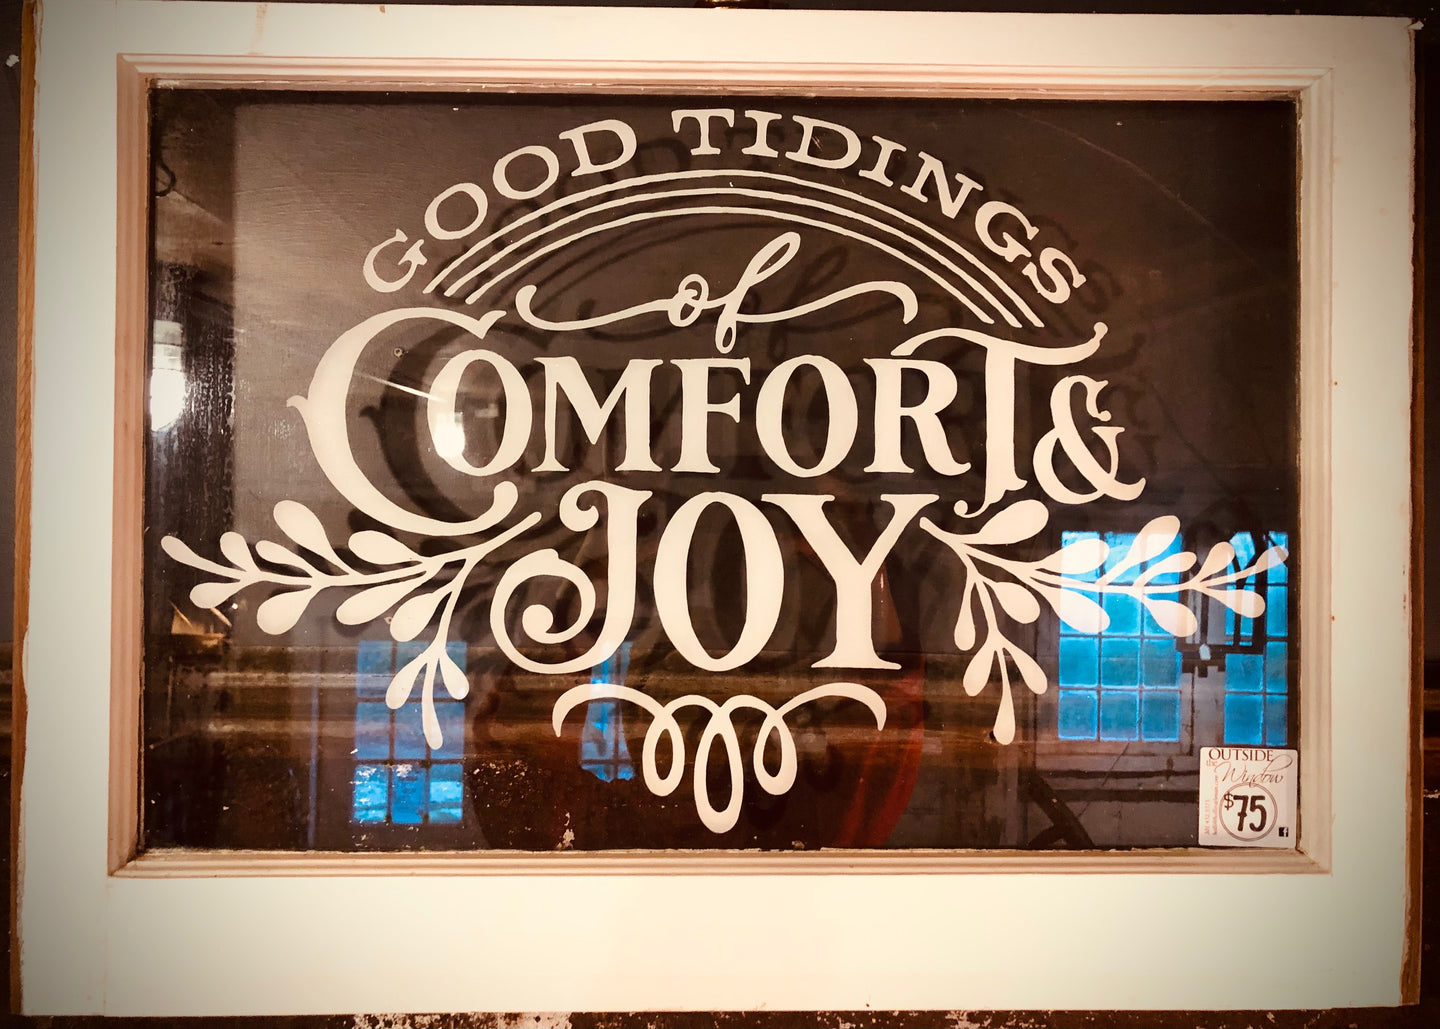 Good Tidings Hand Painted on a Vintage Window